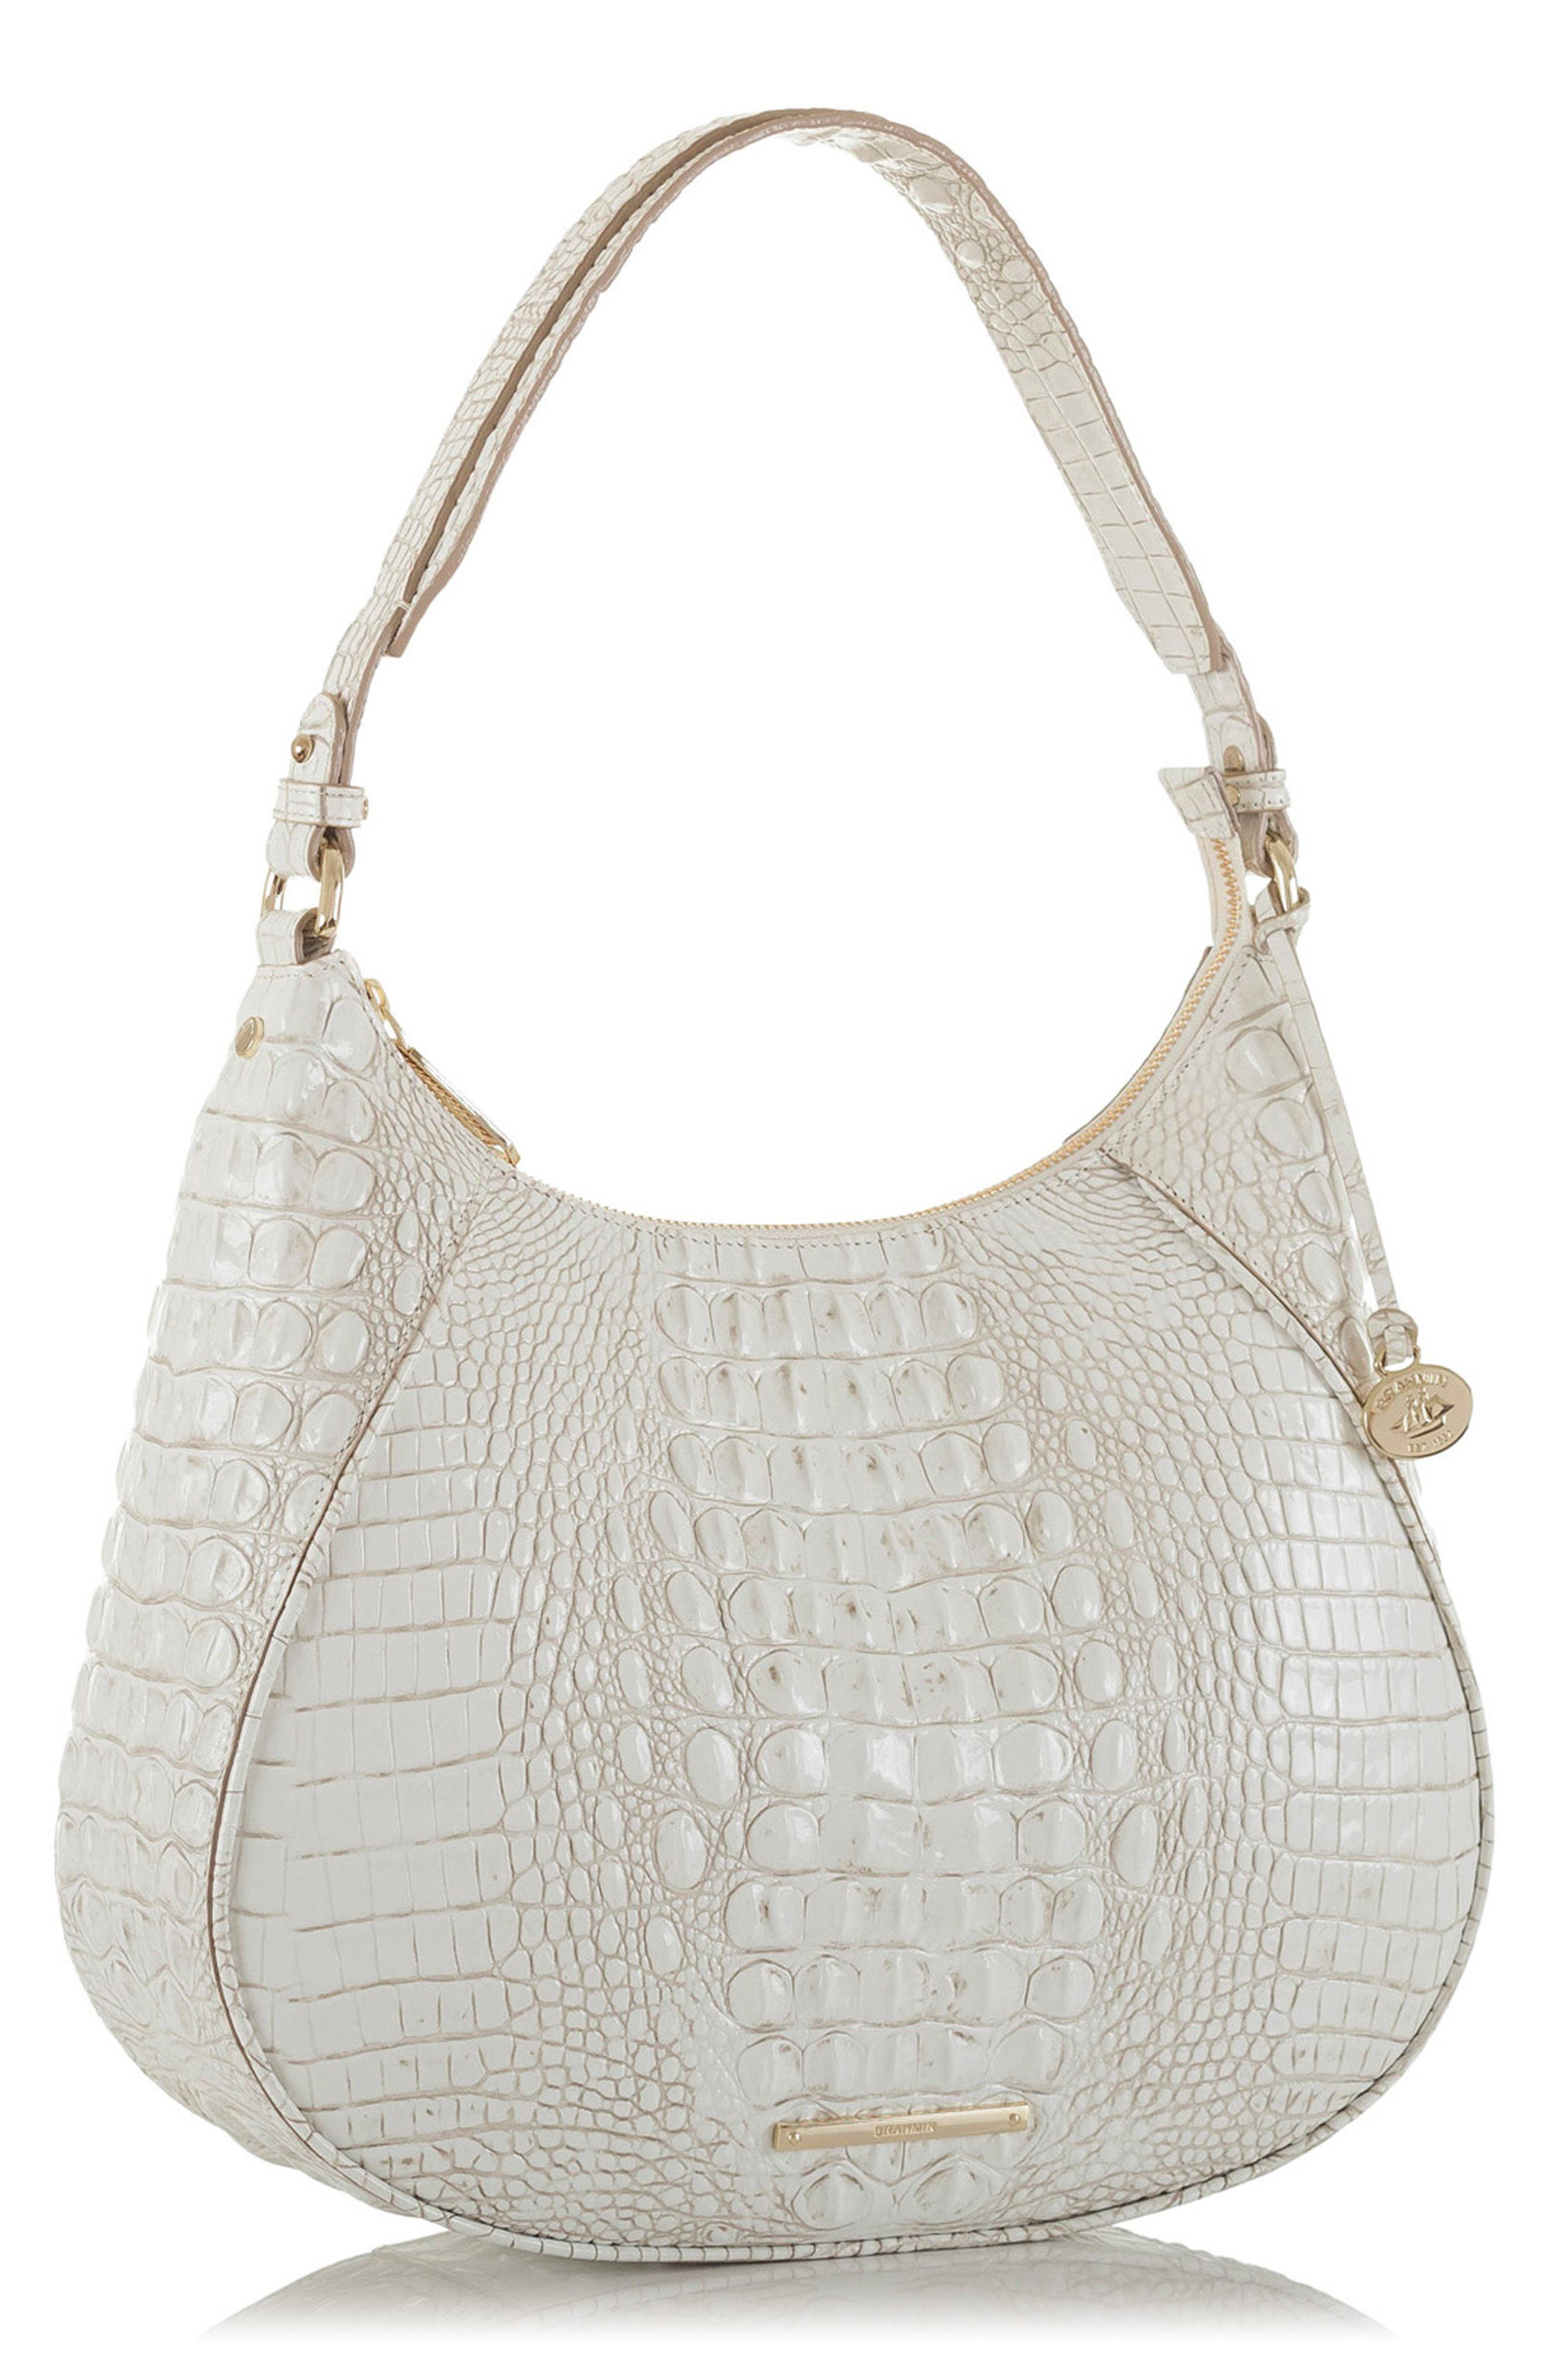 BRAHMIN,                             Melbourne Amira Shoulder Bag,                             Alternate thumbnail 5, color,                             100